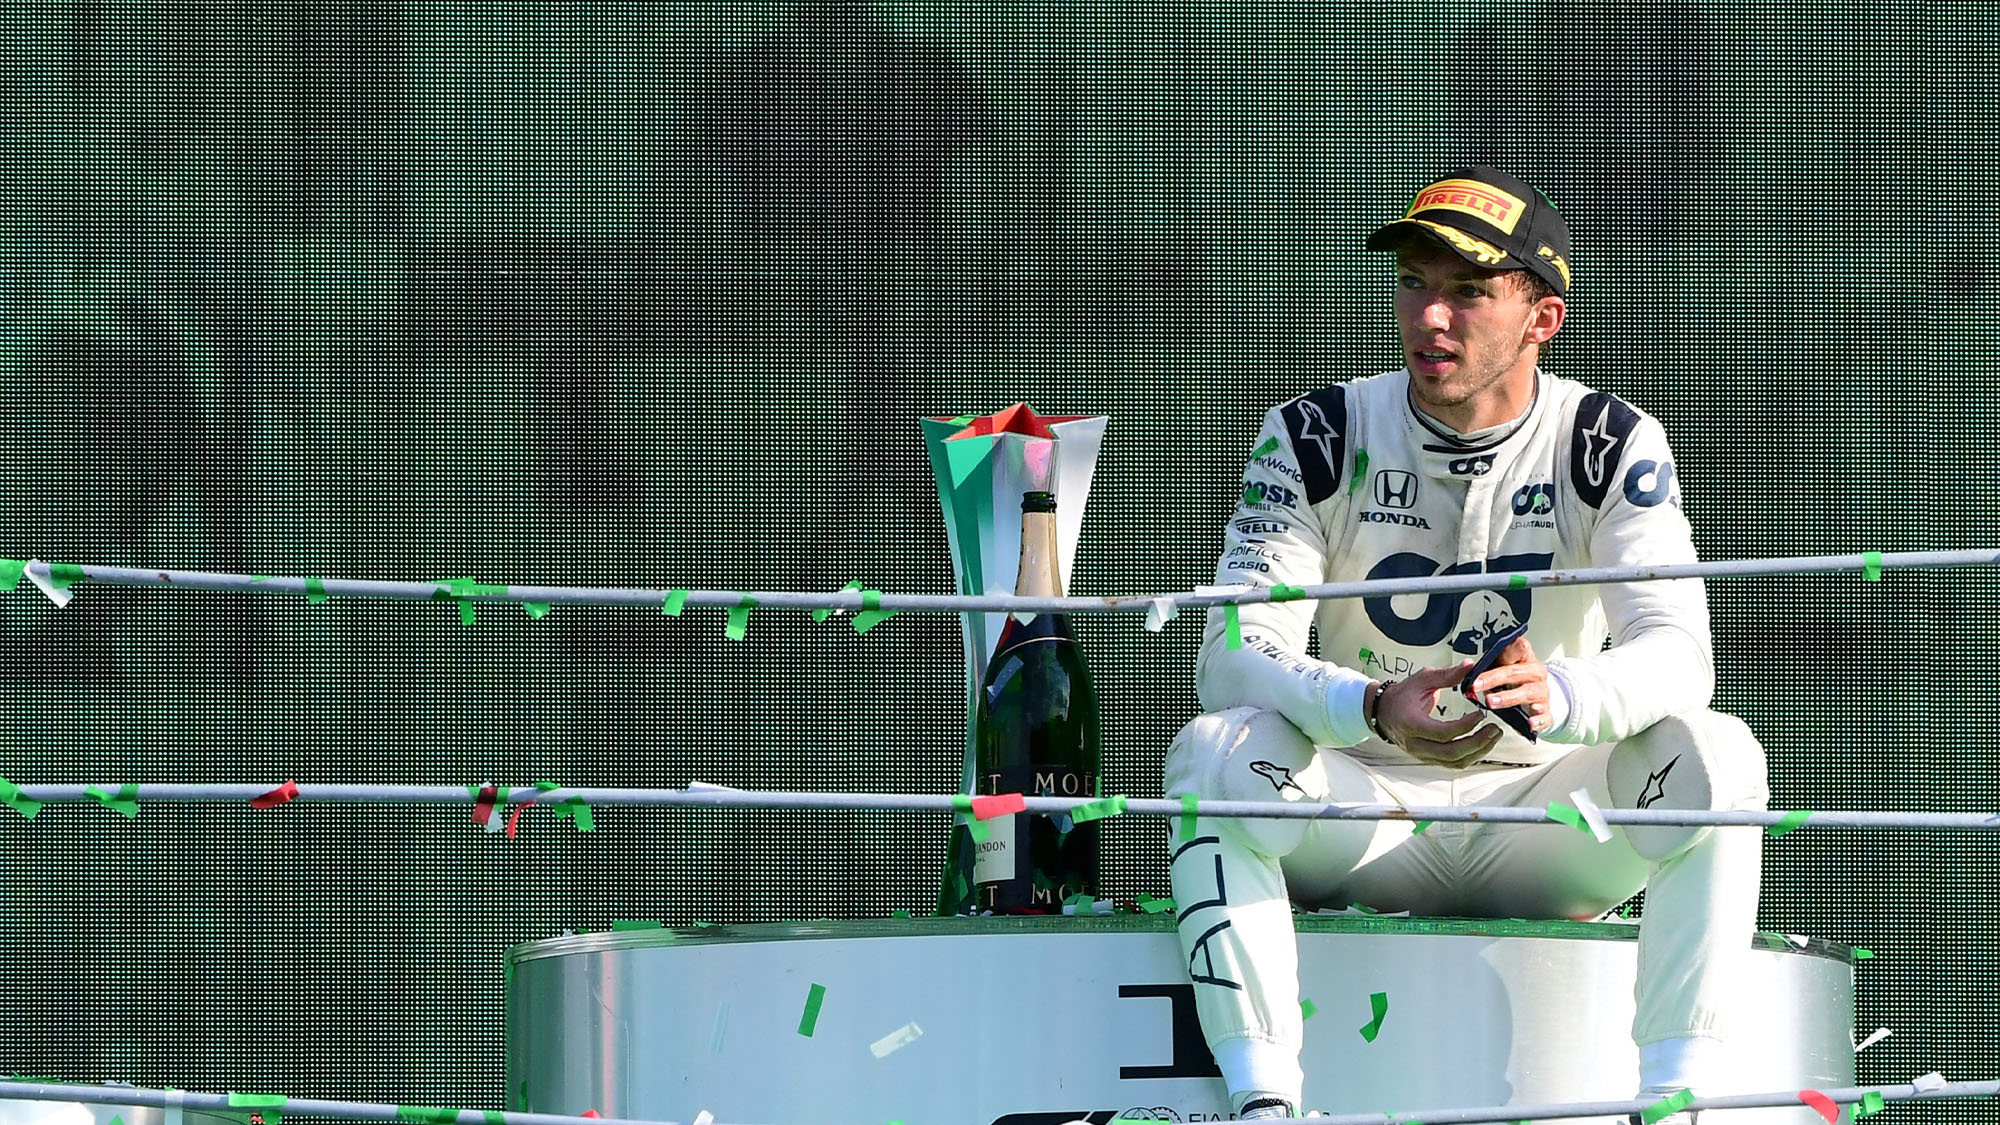 Winner AlphaTauri's French driver Pierre Gasly reacts on the podium after the Italian Formula One Grand Prix at the Autodromo Nazionale circuit in Monza on September 6, 2020. (Photo by JENNIFER LORENZINI / POOL / AFP) (Photo by JENNIFER LORENZINI/POOL/AFP via Getty Images)